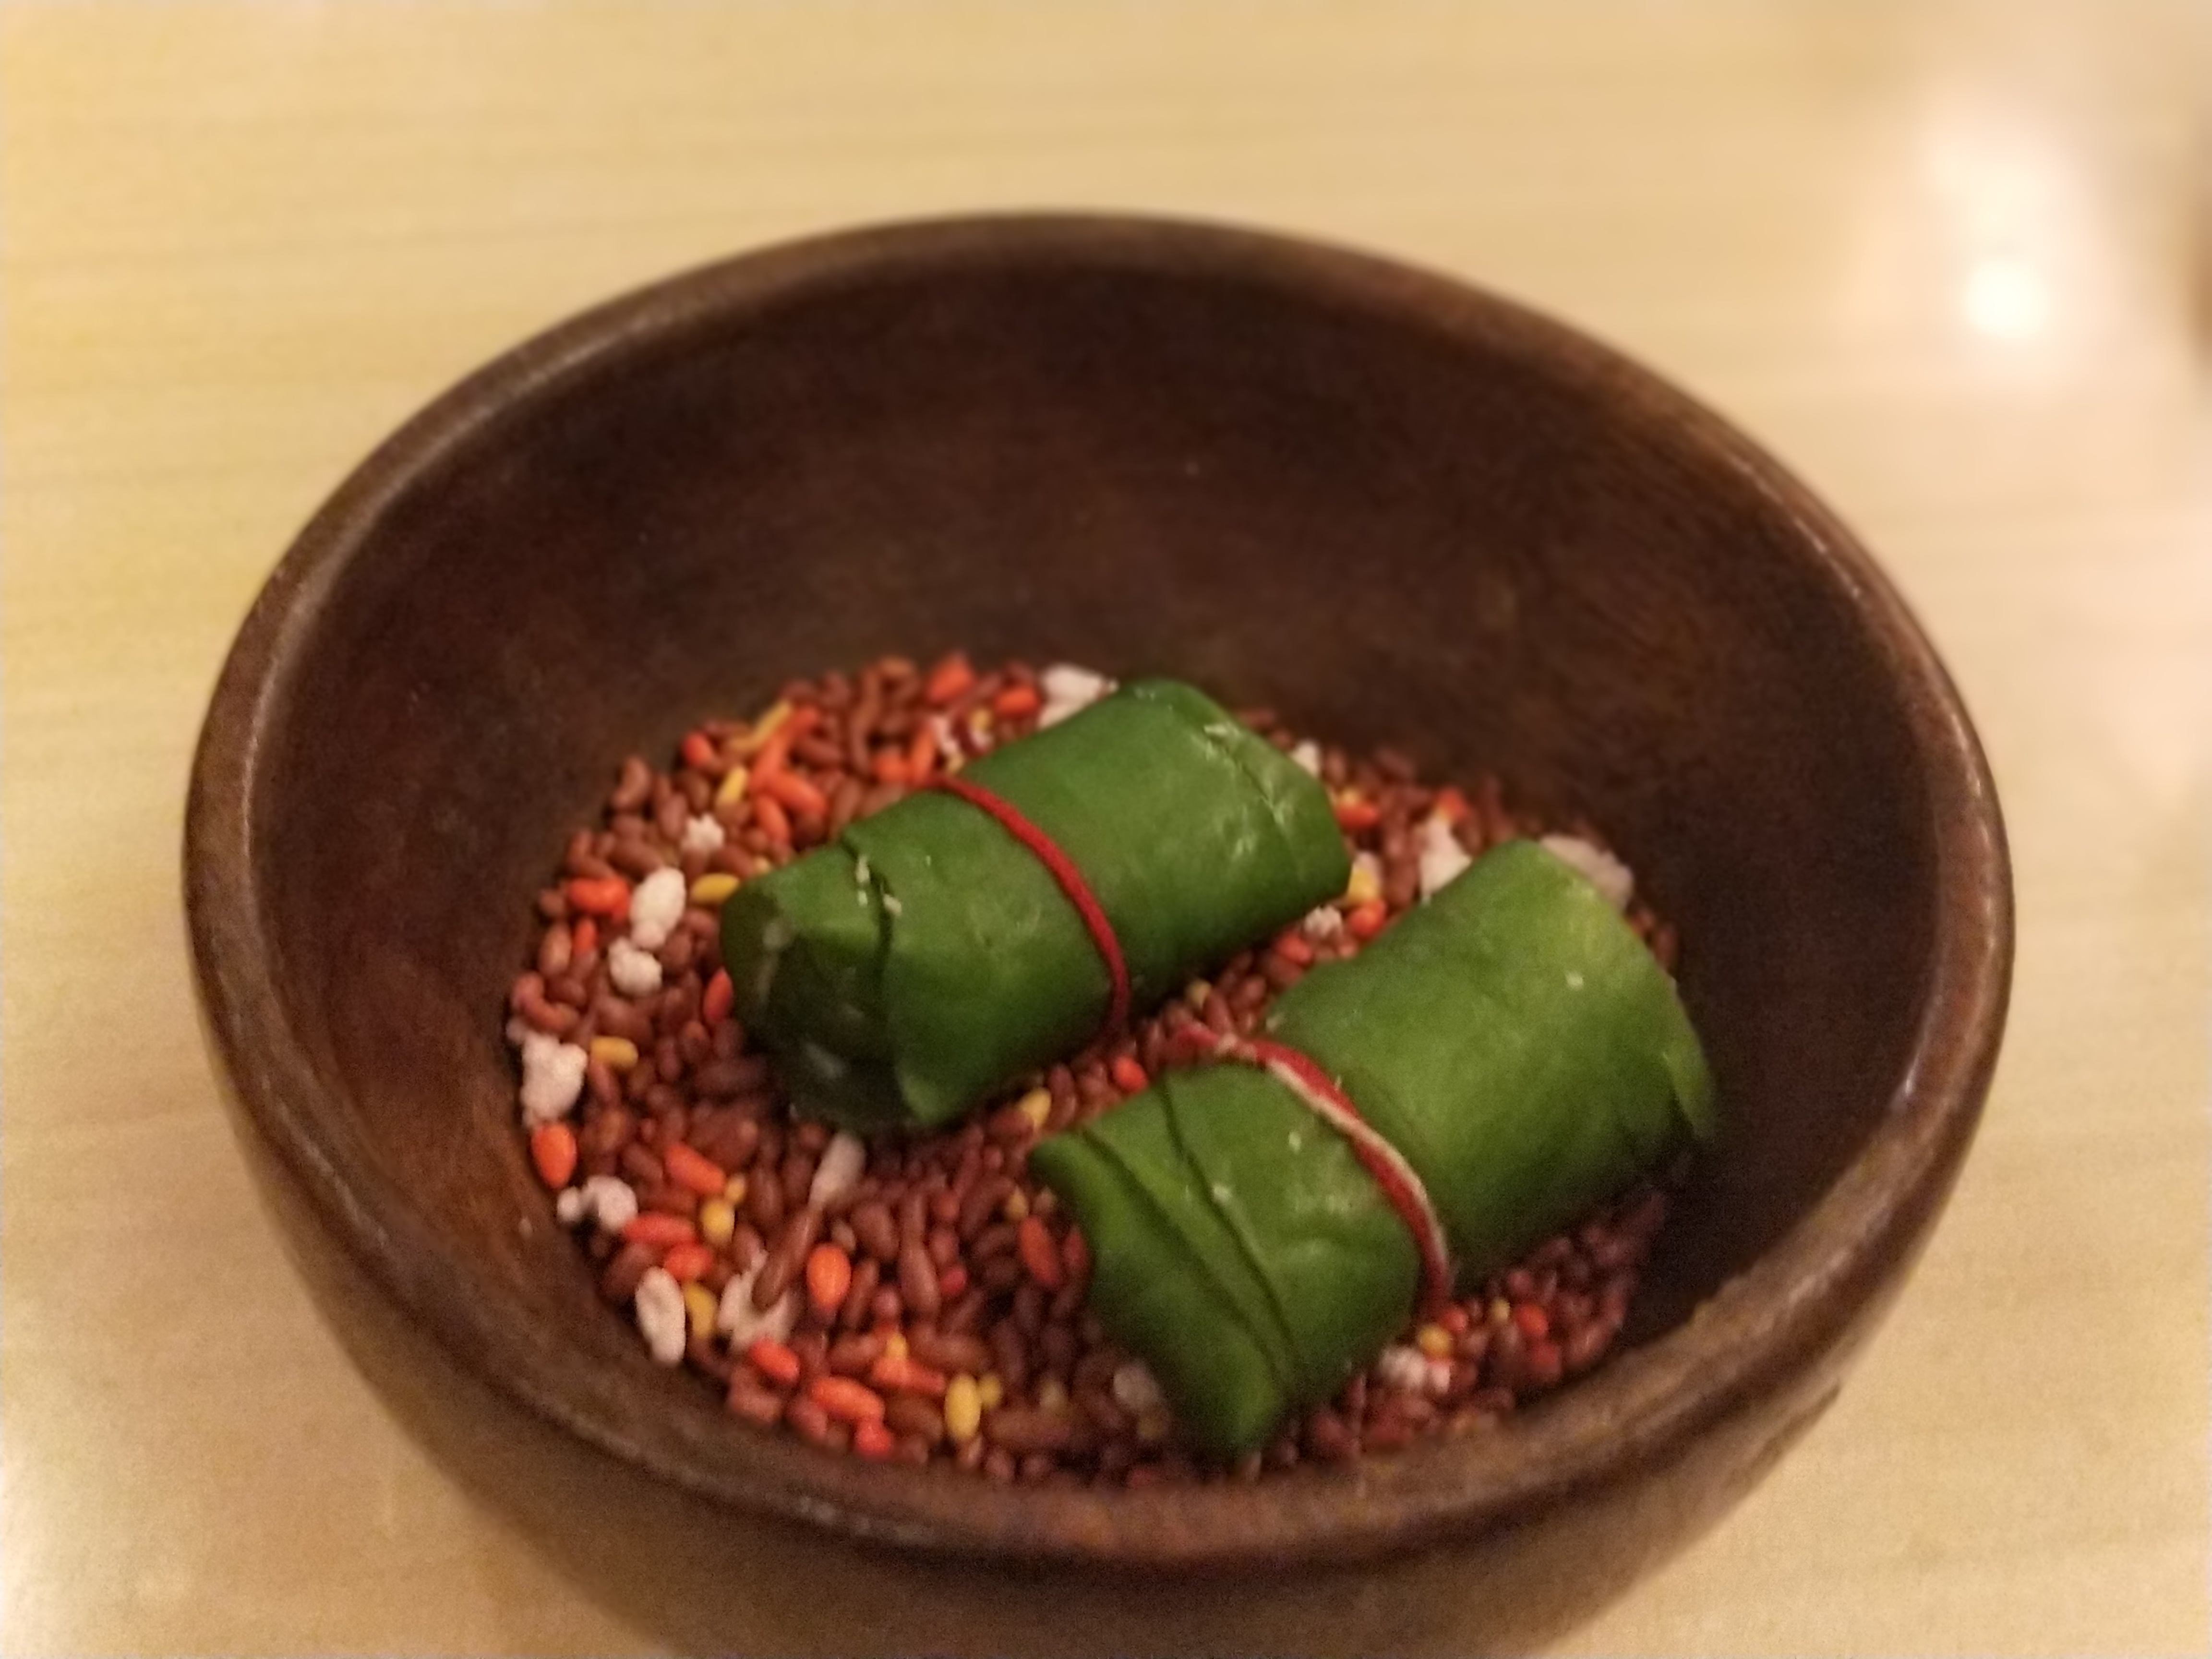 Dining at Zaika is simply incomplete without the Zaika Special Paan!